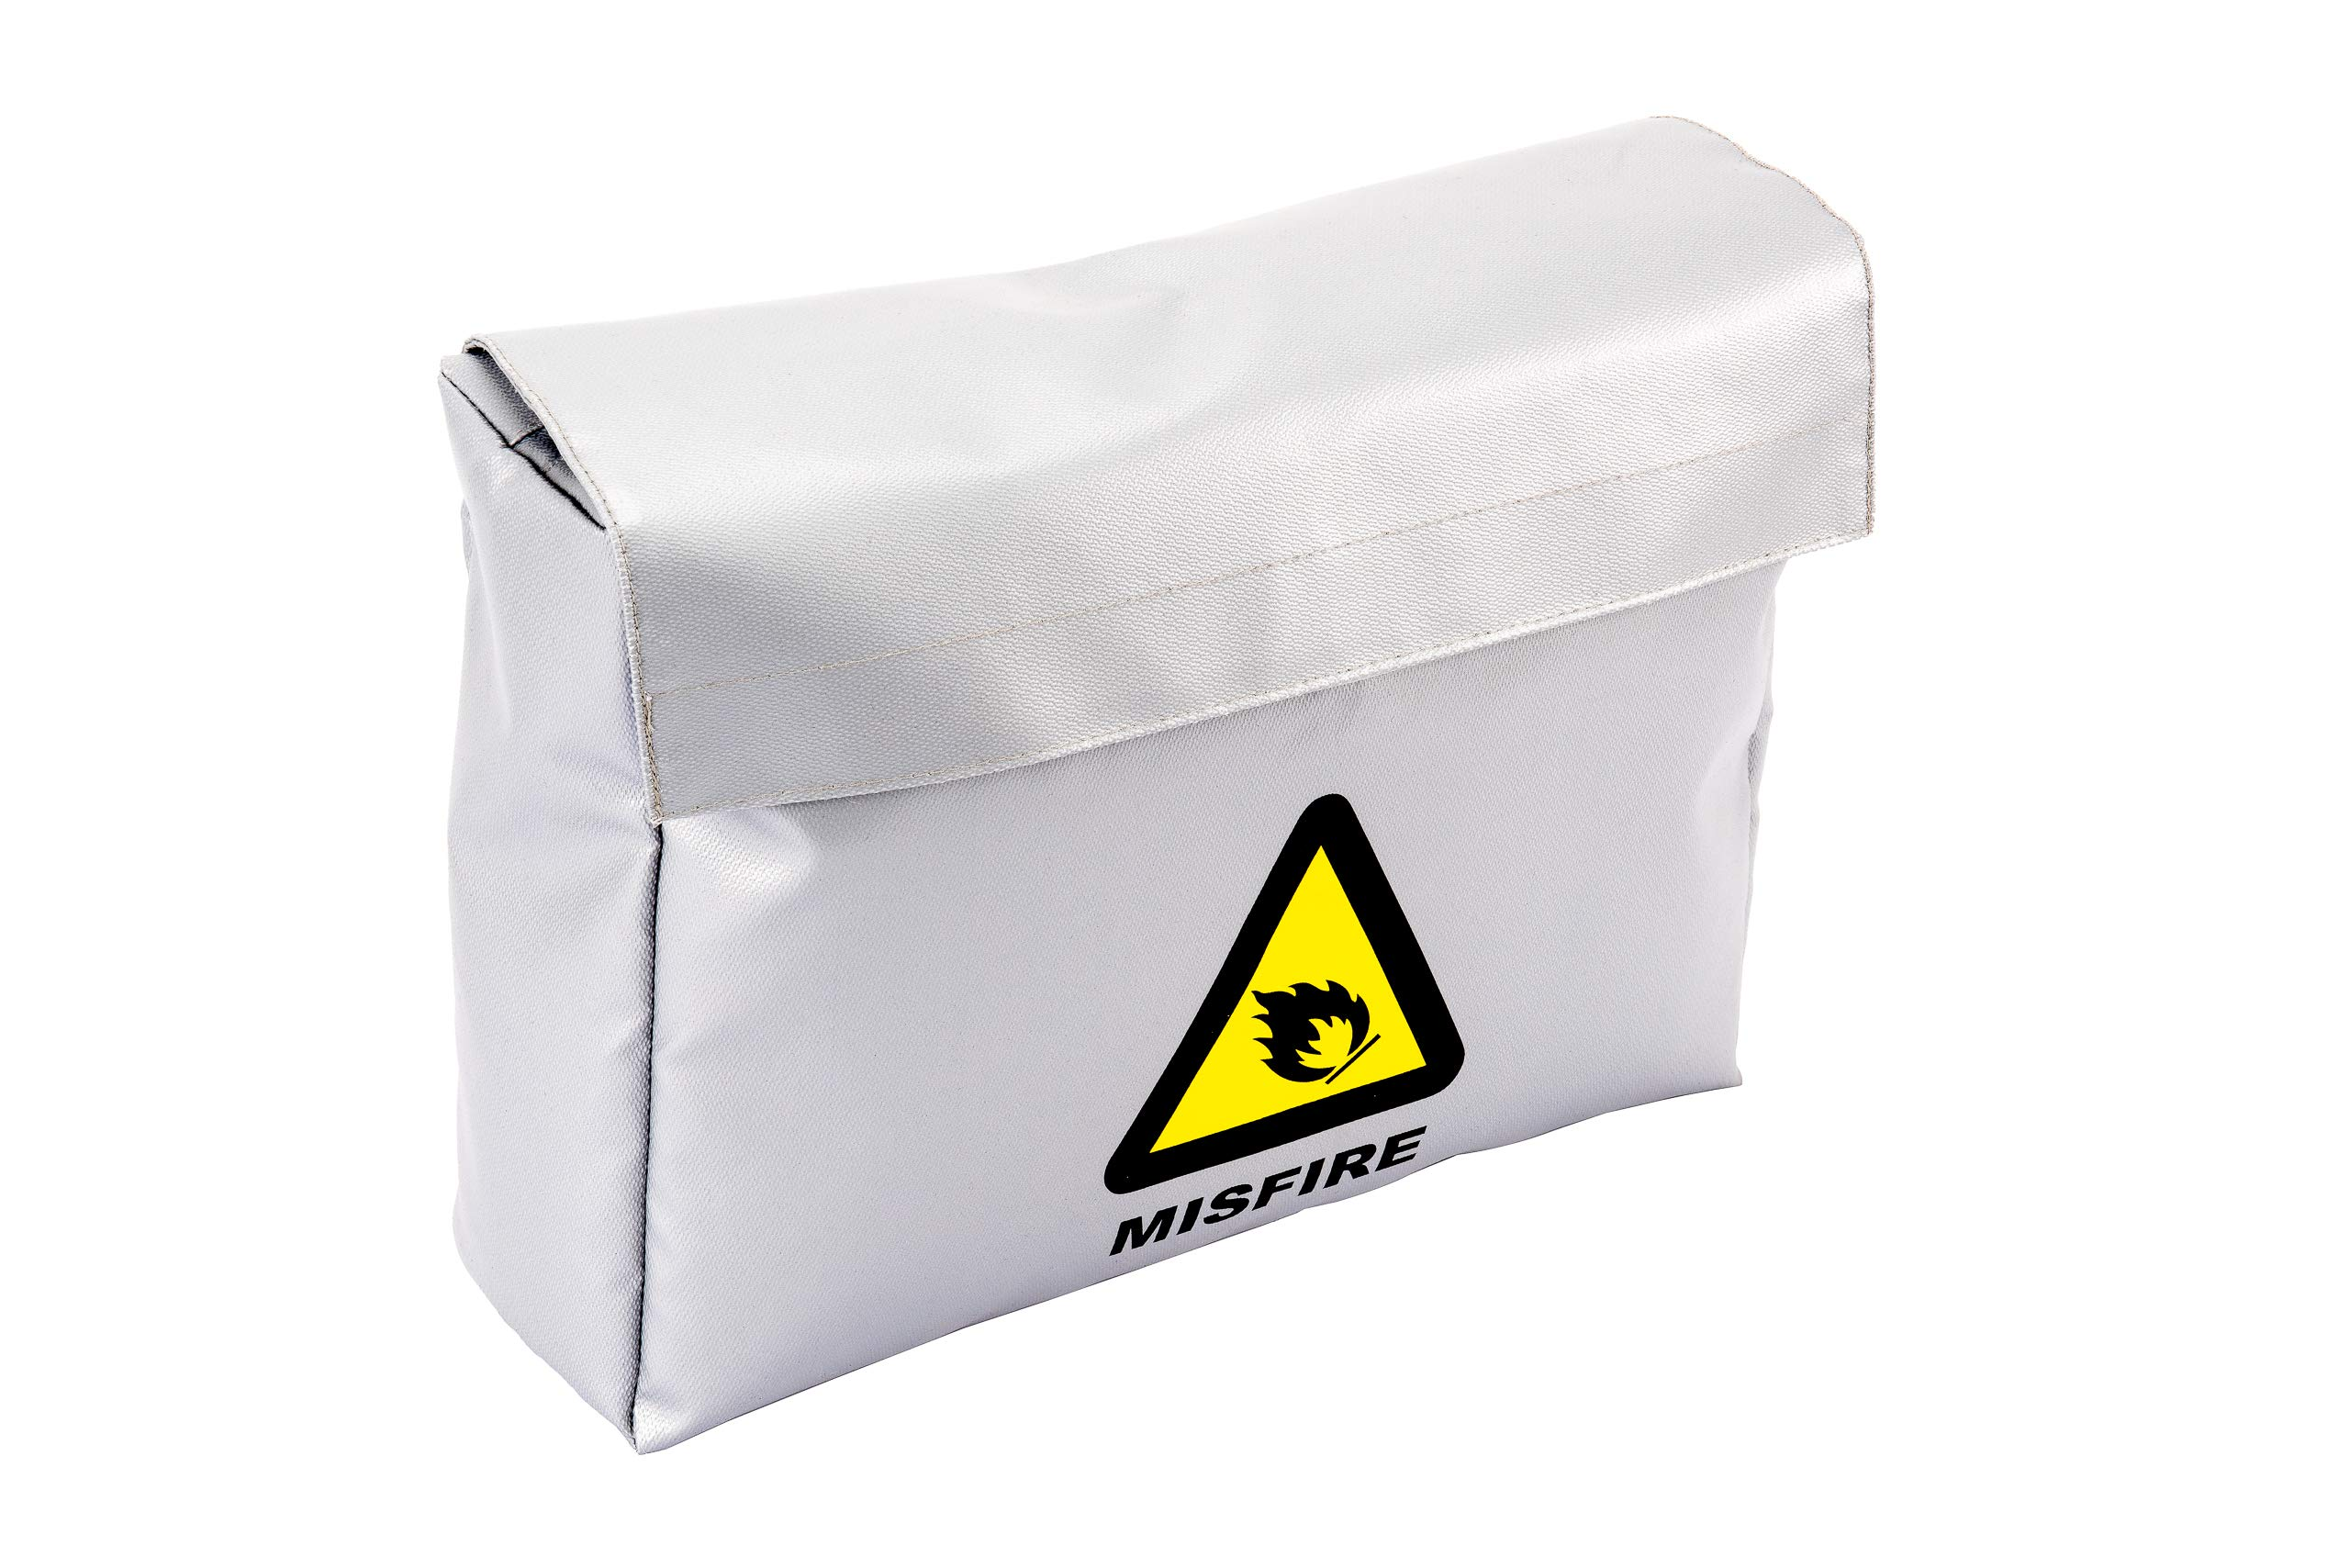 MISFIRE Fireproof and Water Resistant Bag | Silicone Coated Fiberglass Non-Itchy | Double Closure |11x15x4 Size for Legal Documents, Currency, Jewelry, Etc.